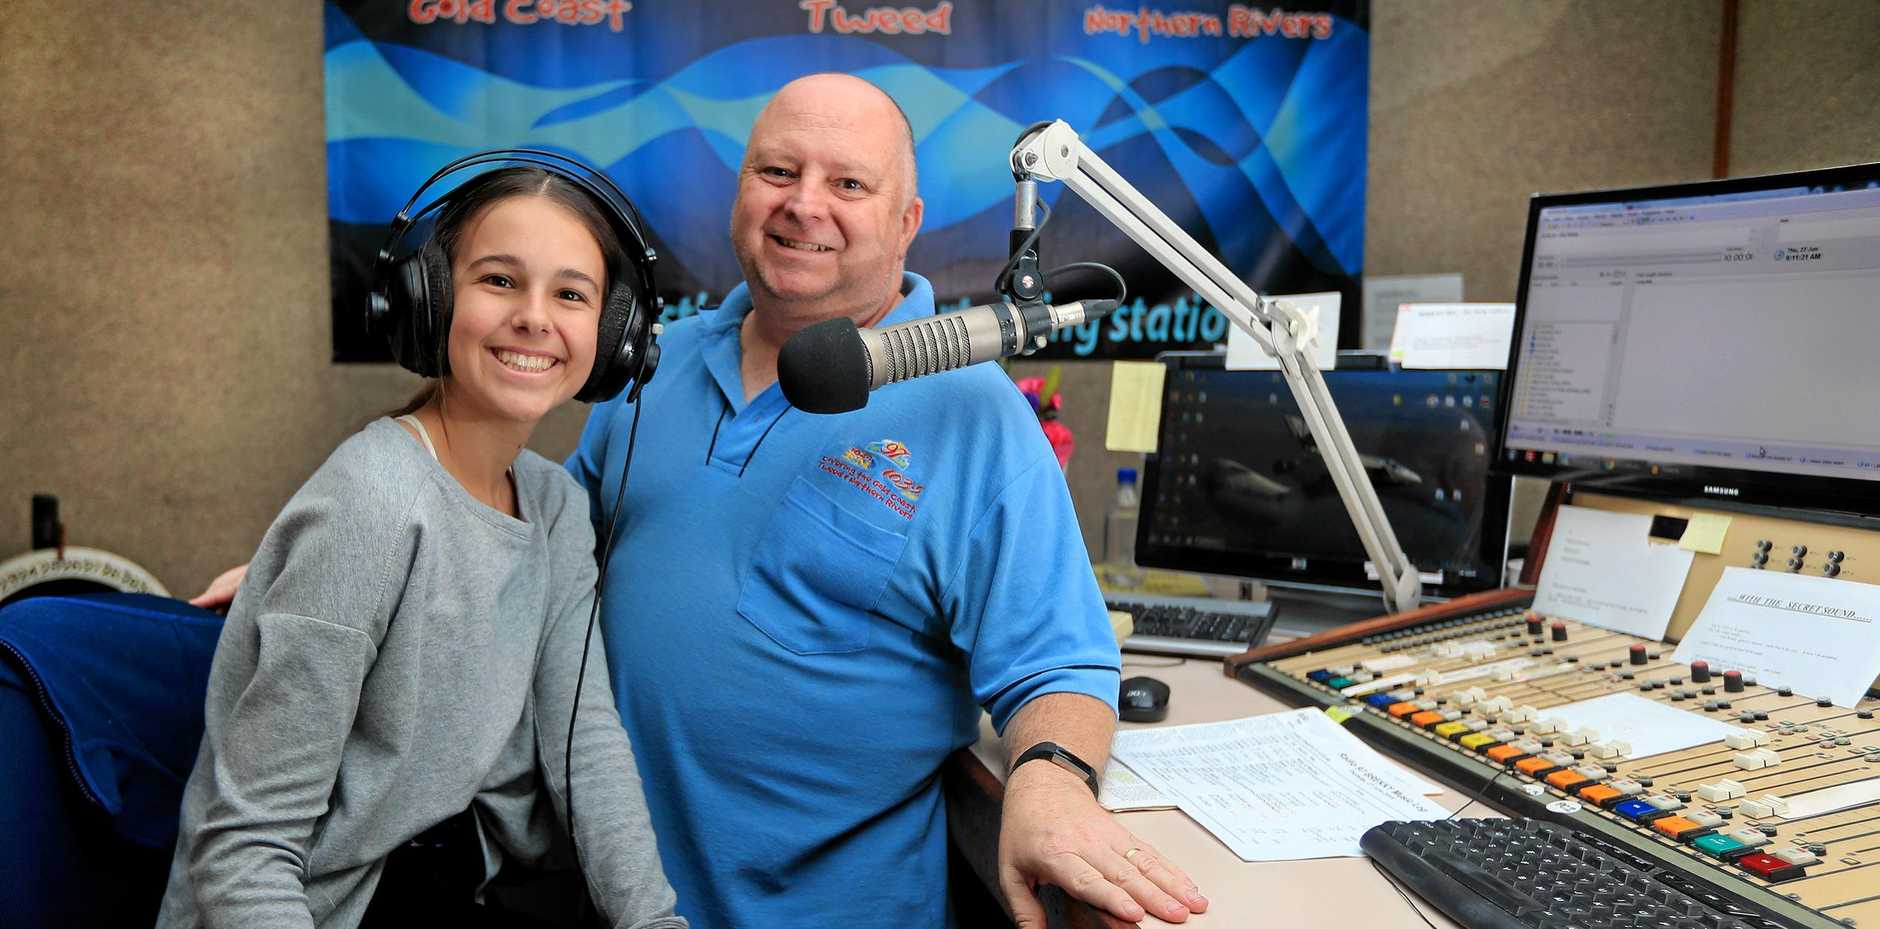 Radio 97 breakfast announcer Scott Mayman with work experience student Amy Van den Akker in the studio.